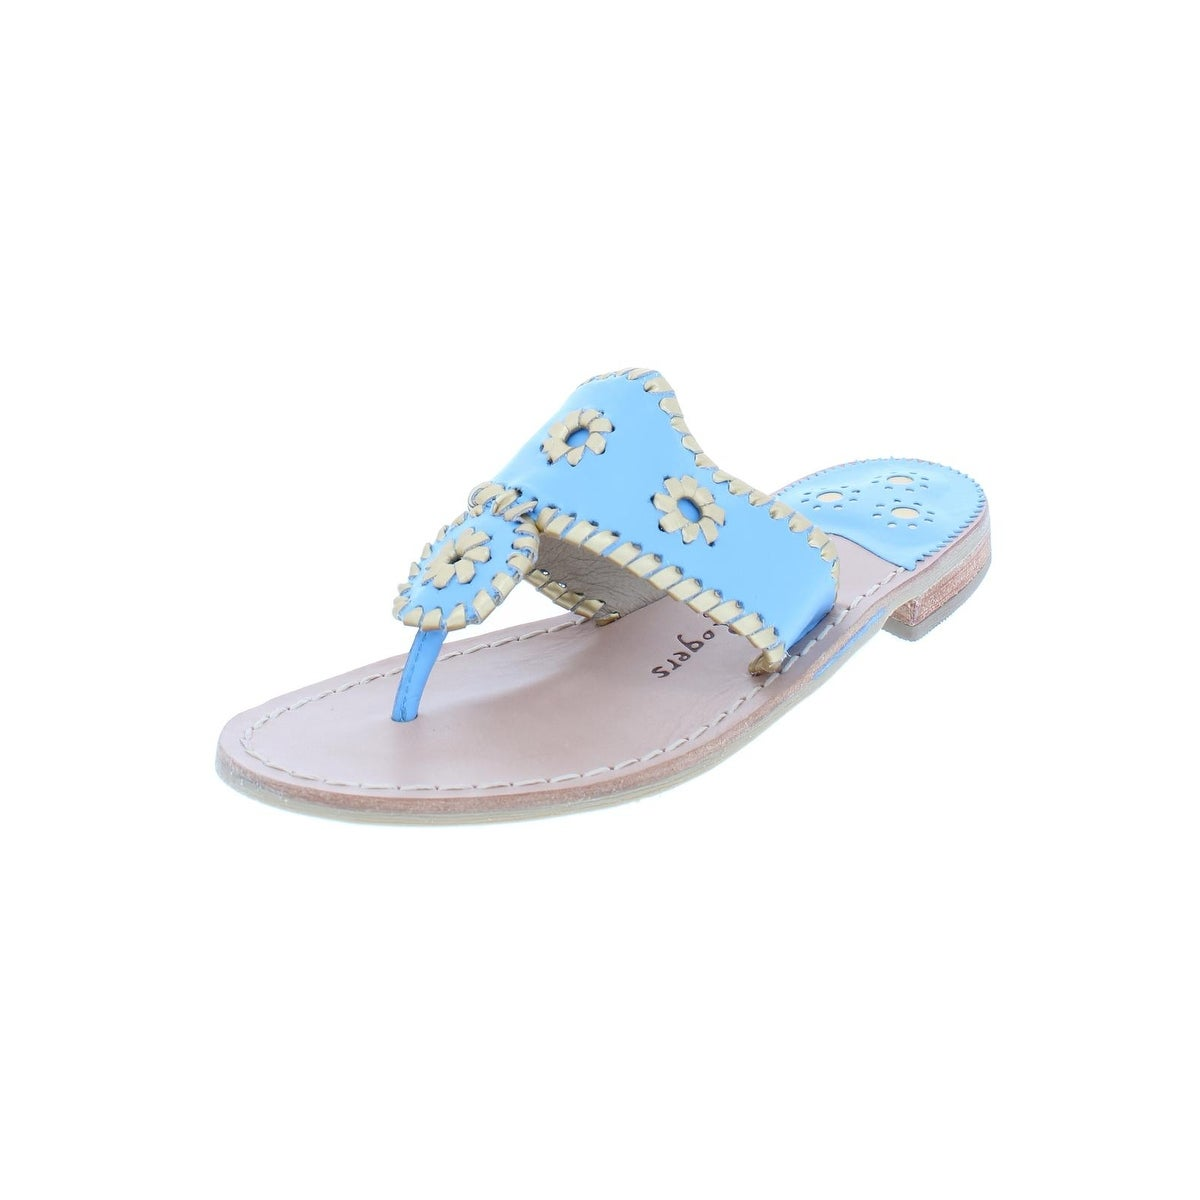 c47b14a6b279 Buy Jack Rogers Women s Sandals Online at Overstock